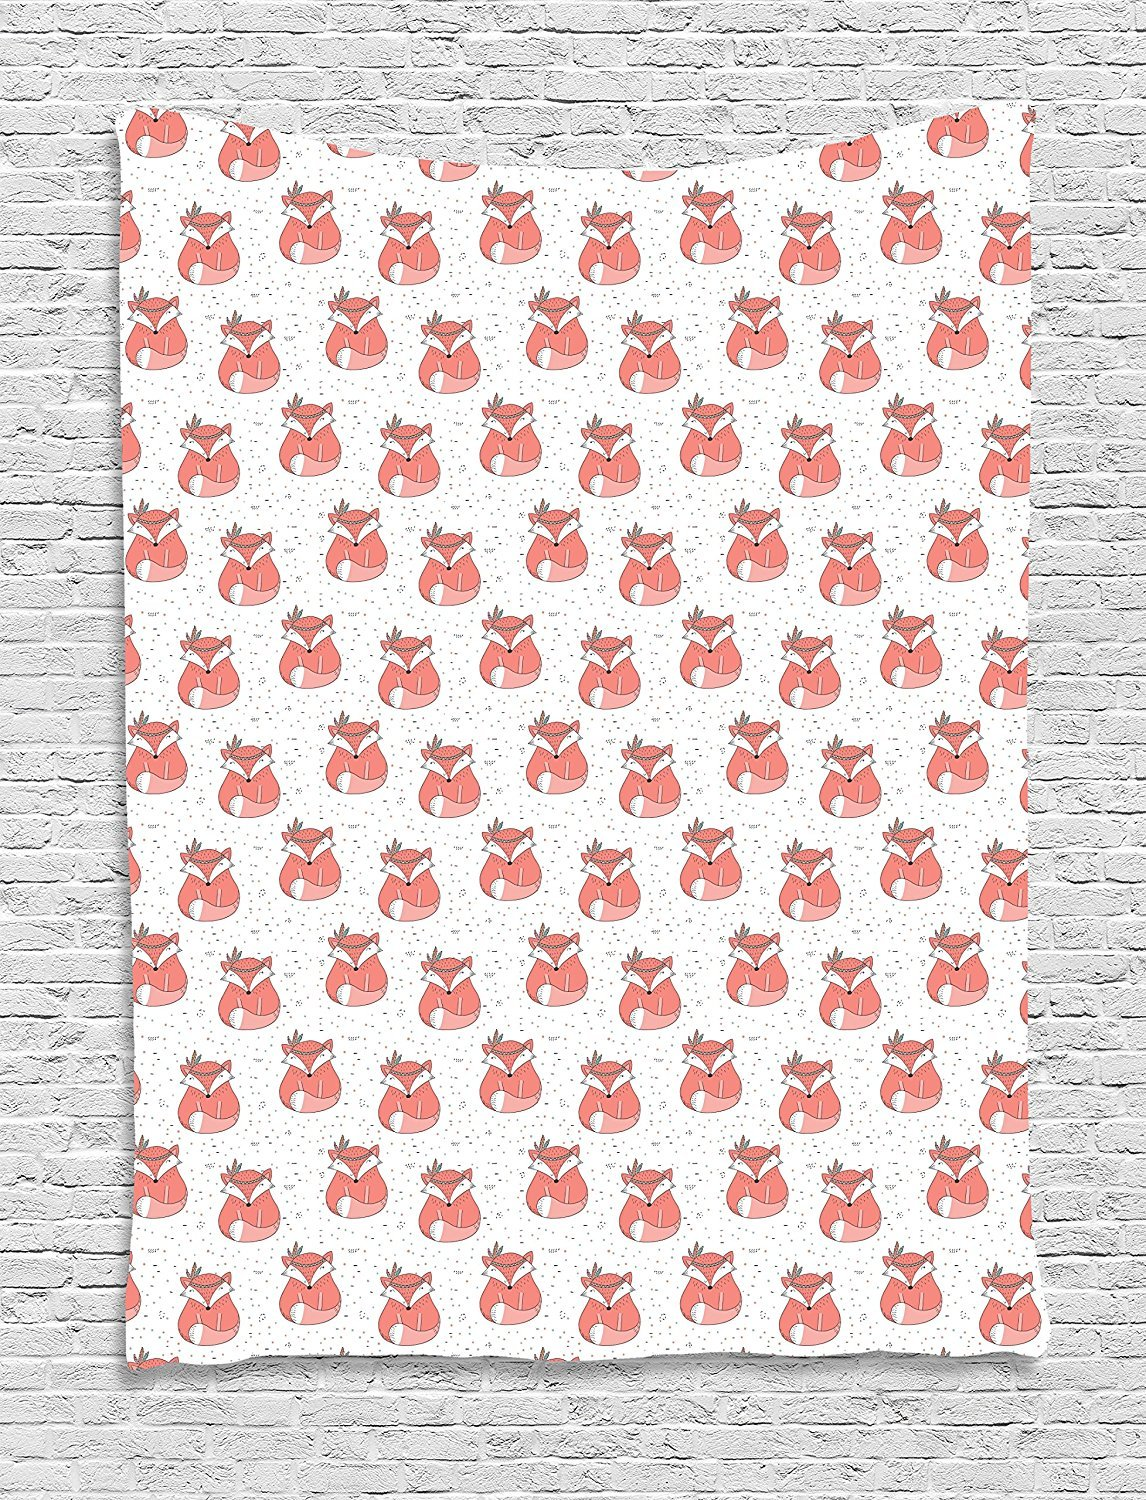 Fox Tapestry, Ethnic Inspirations in Hand Drawn Forest Animal Pattern with Dotted Background, Wall Hanging for Bedroom Living Room Dorm, 60 W X 80 L Inches, Coral Seafoam Black